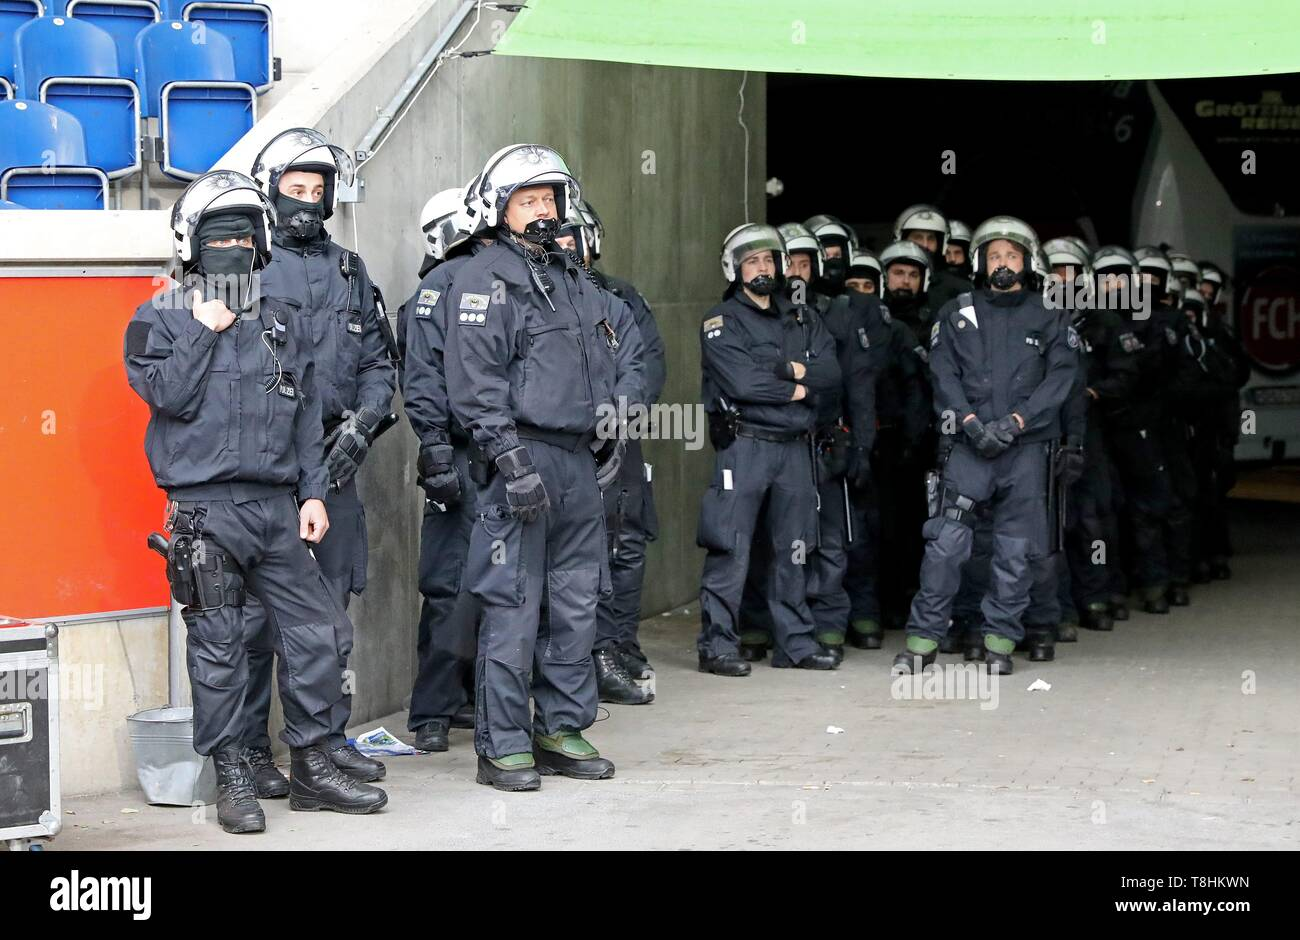 firo: 12.05.2019 Football, 2. Bundesliga, season 2018/2019 MSV Duisburg - FC Heidenheim The police are ready, if anything should escalate. | usage worldwide - Stock Image